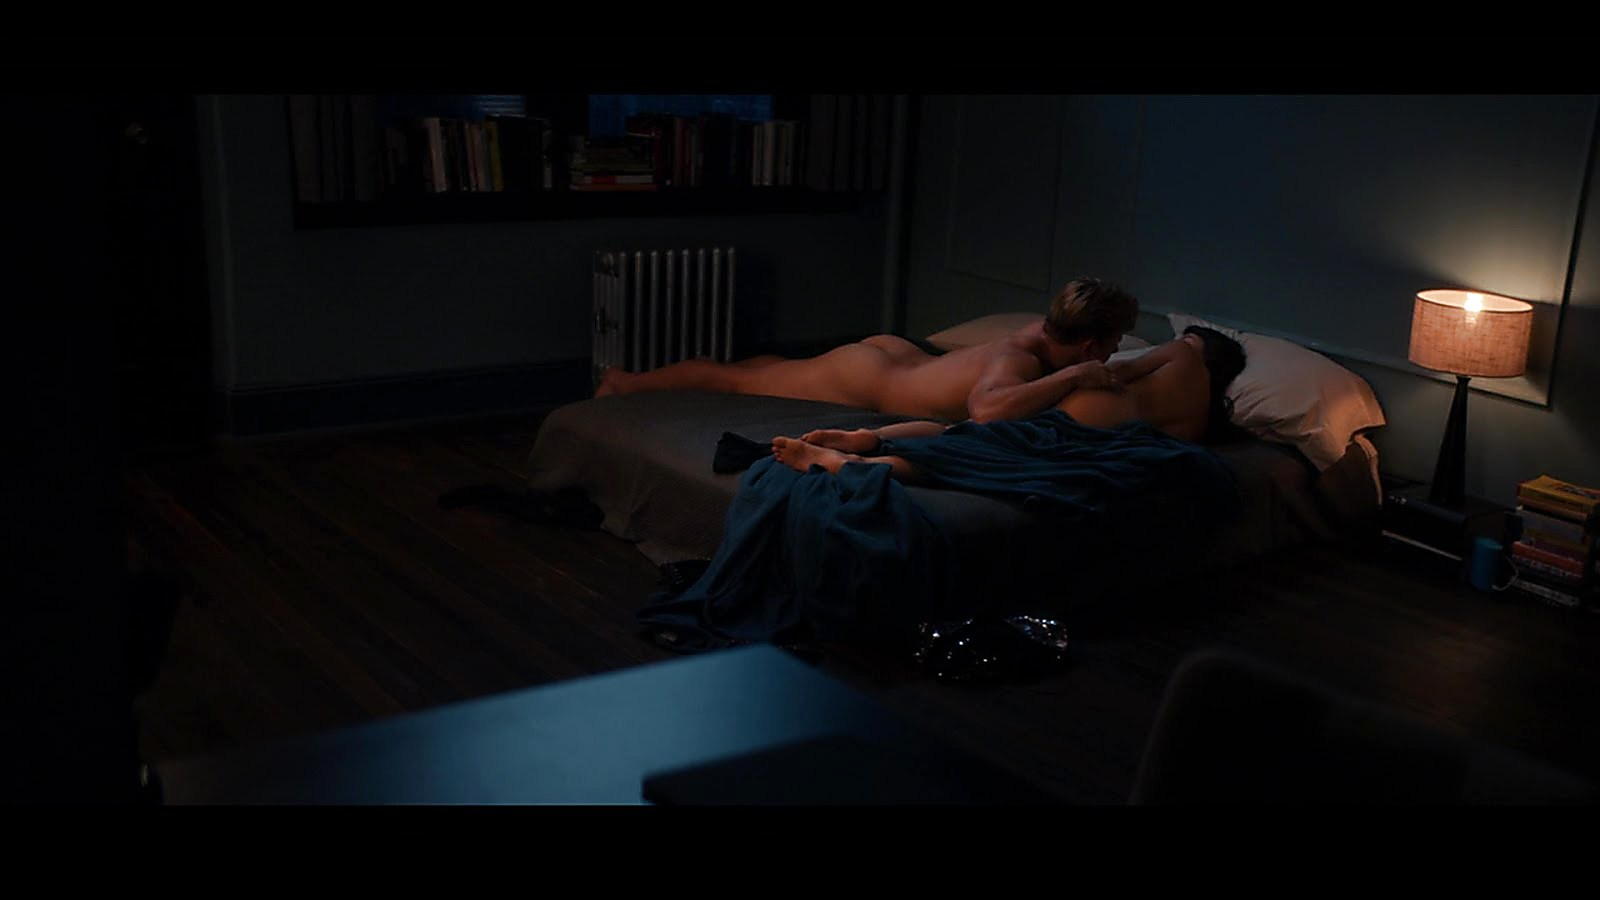 Billy Magnussen sexy shirtless scene October 31, 2018, 2pm